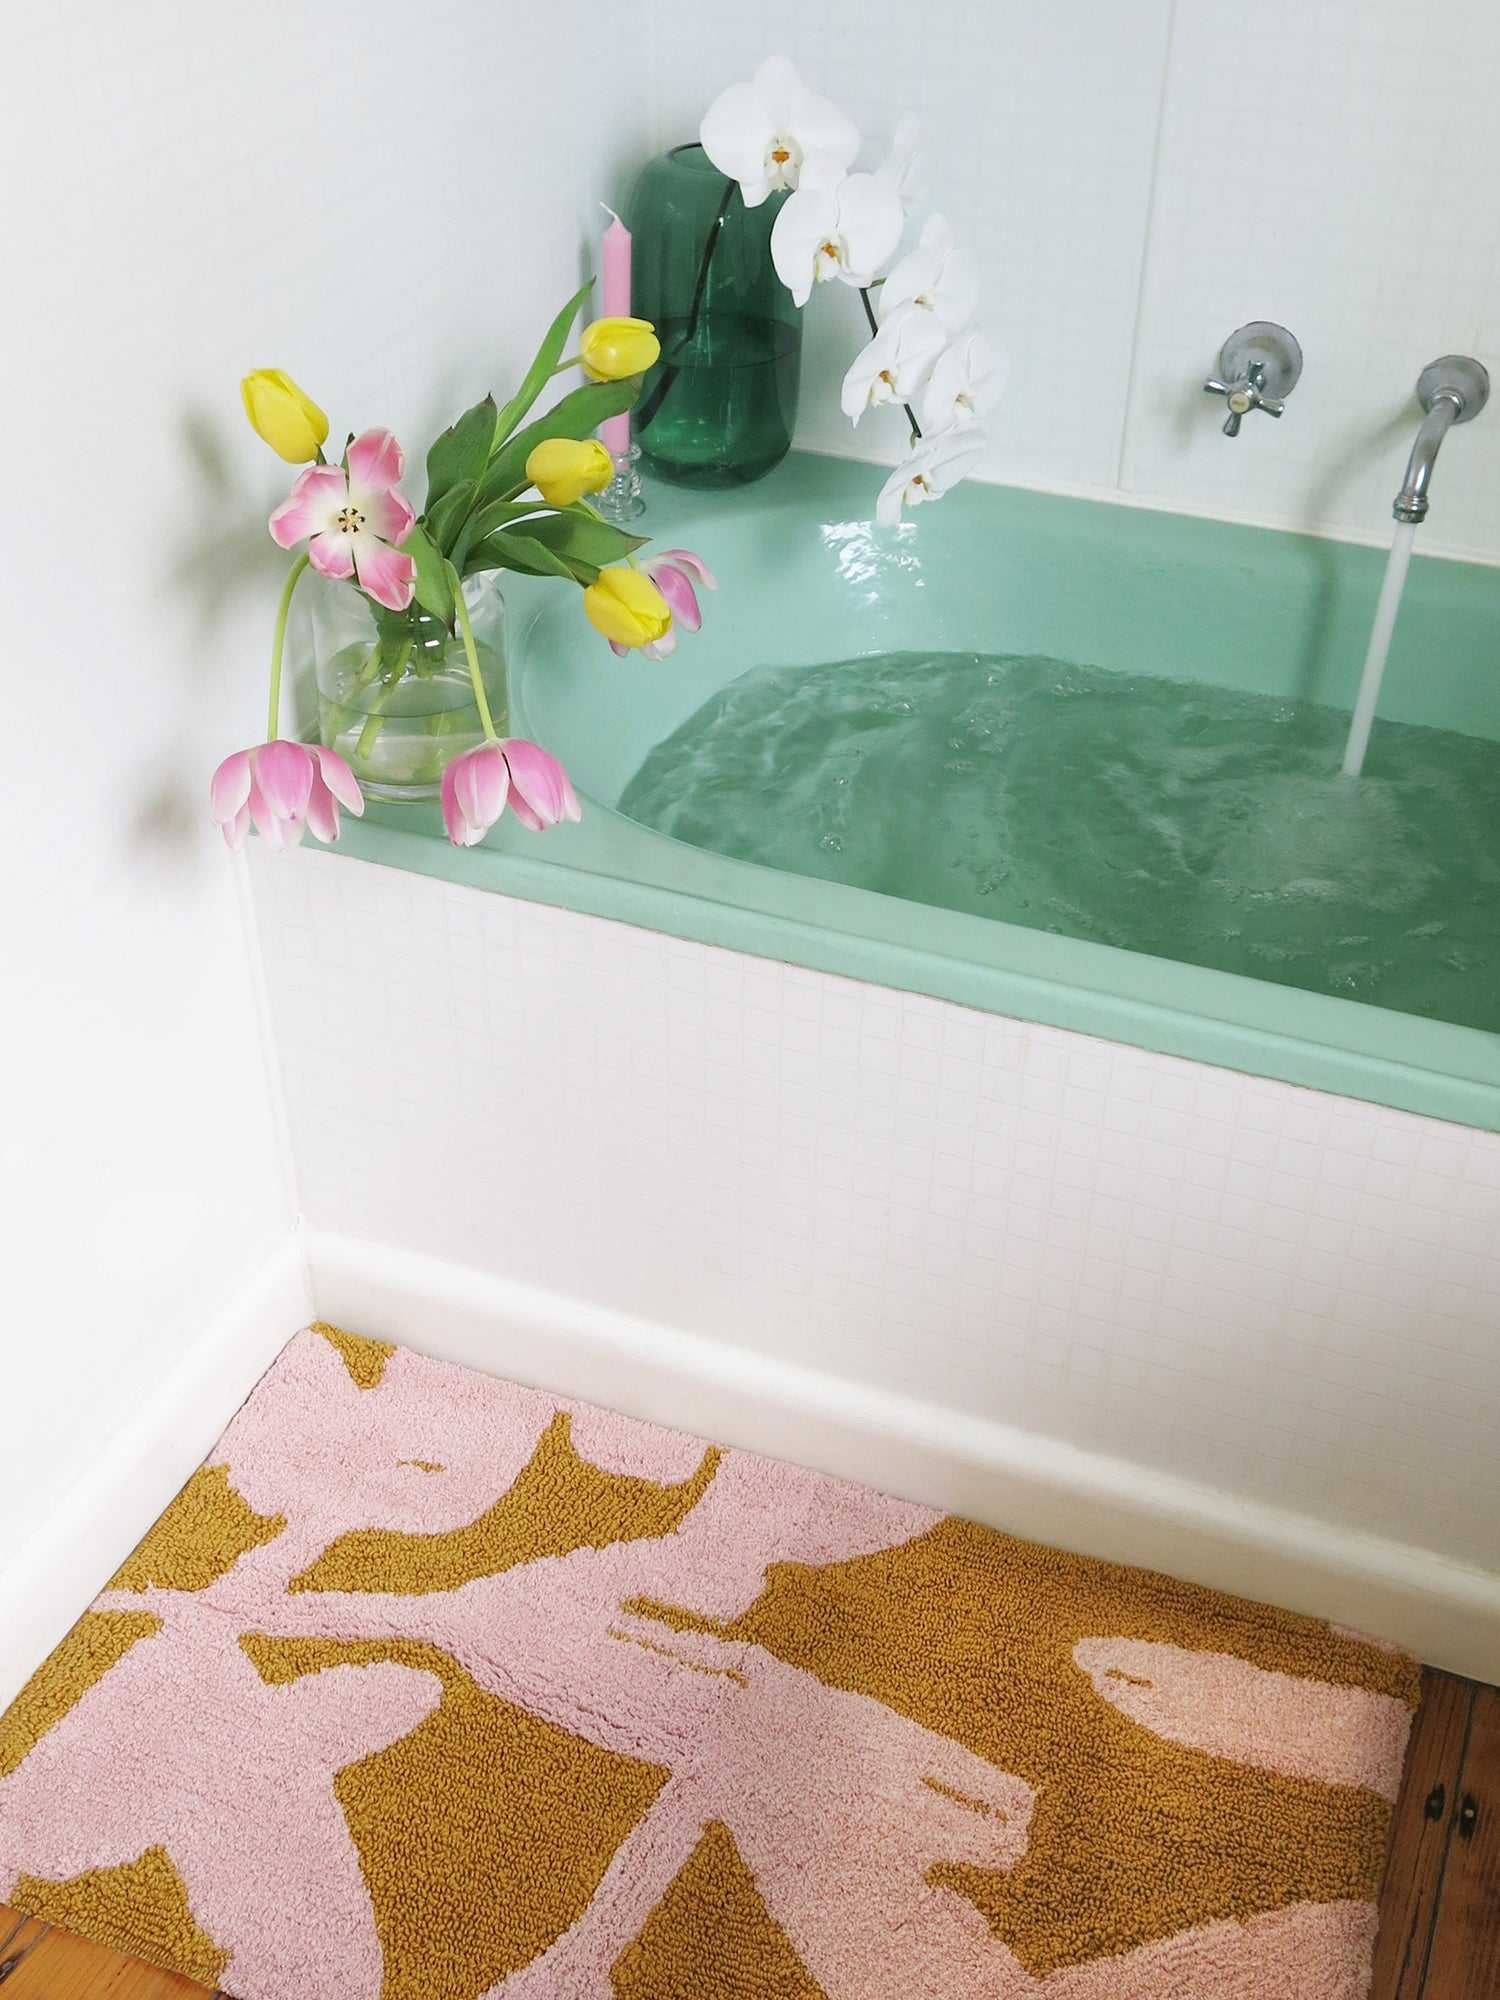 Abstract Bath Mat in Pink & Mustard - PRE-ORDER  by Mosey Me